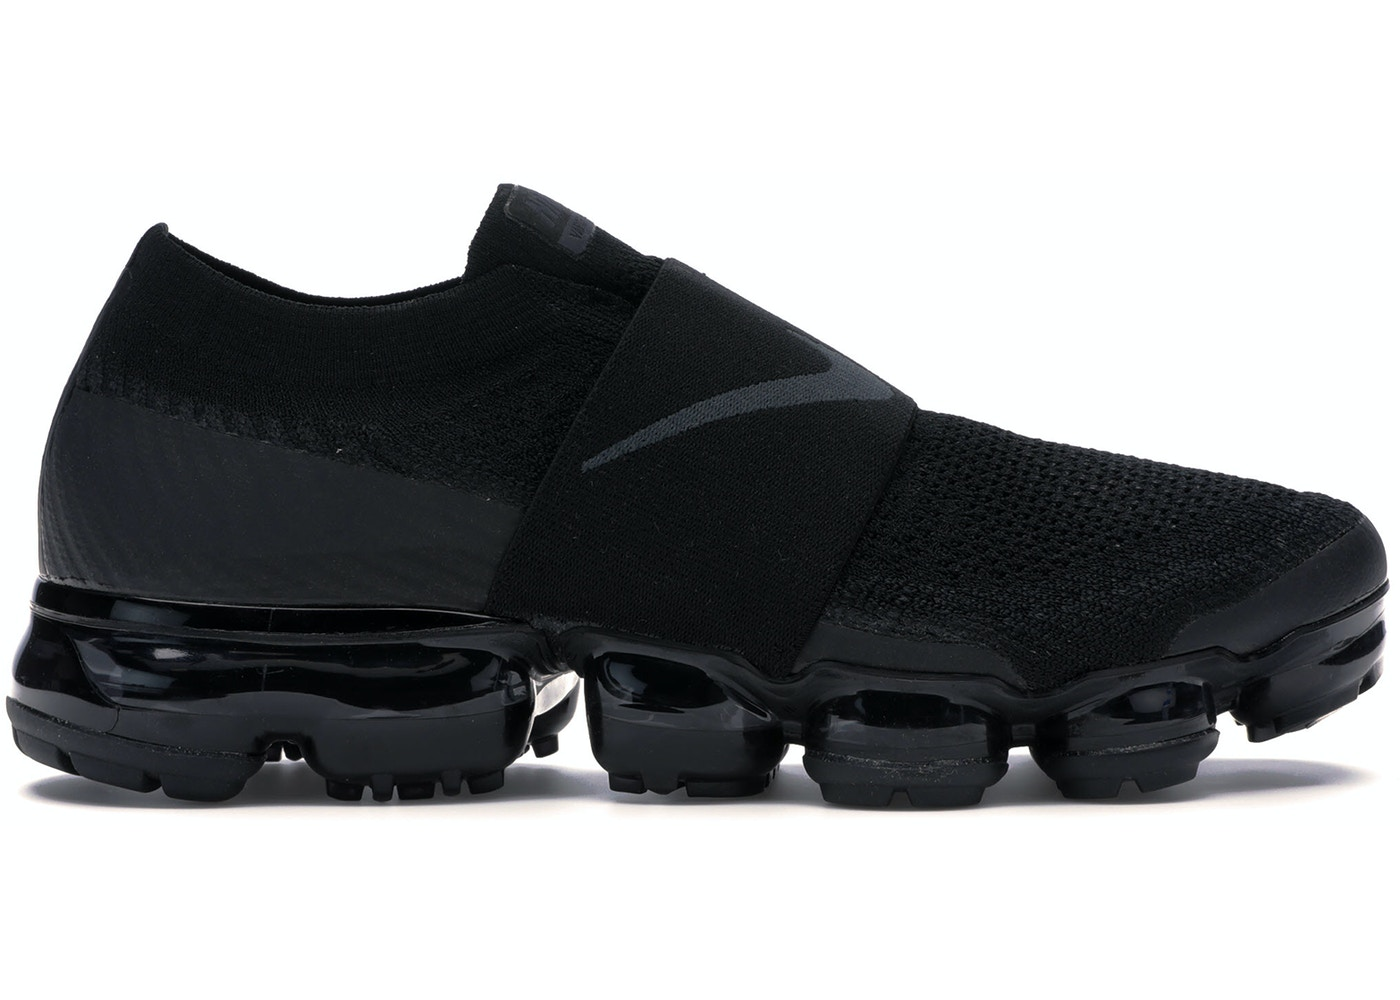 21c9831f019 Air VaporMax Moc Triple Black - AH3397-004